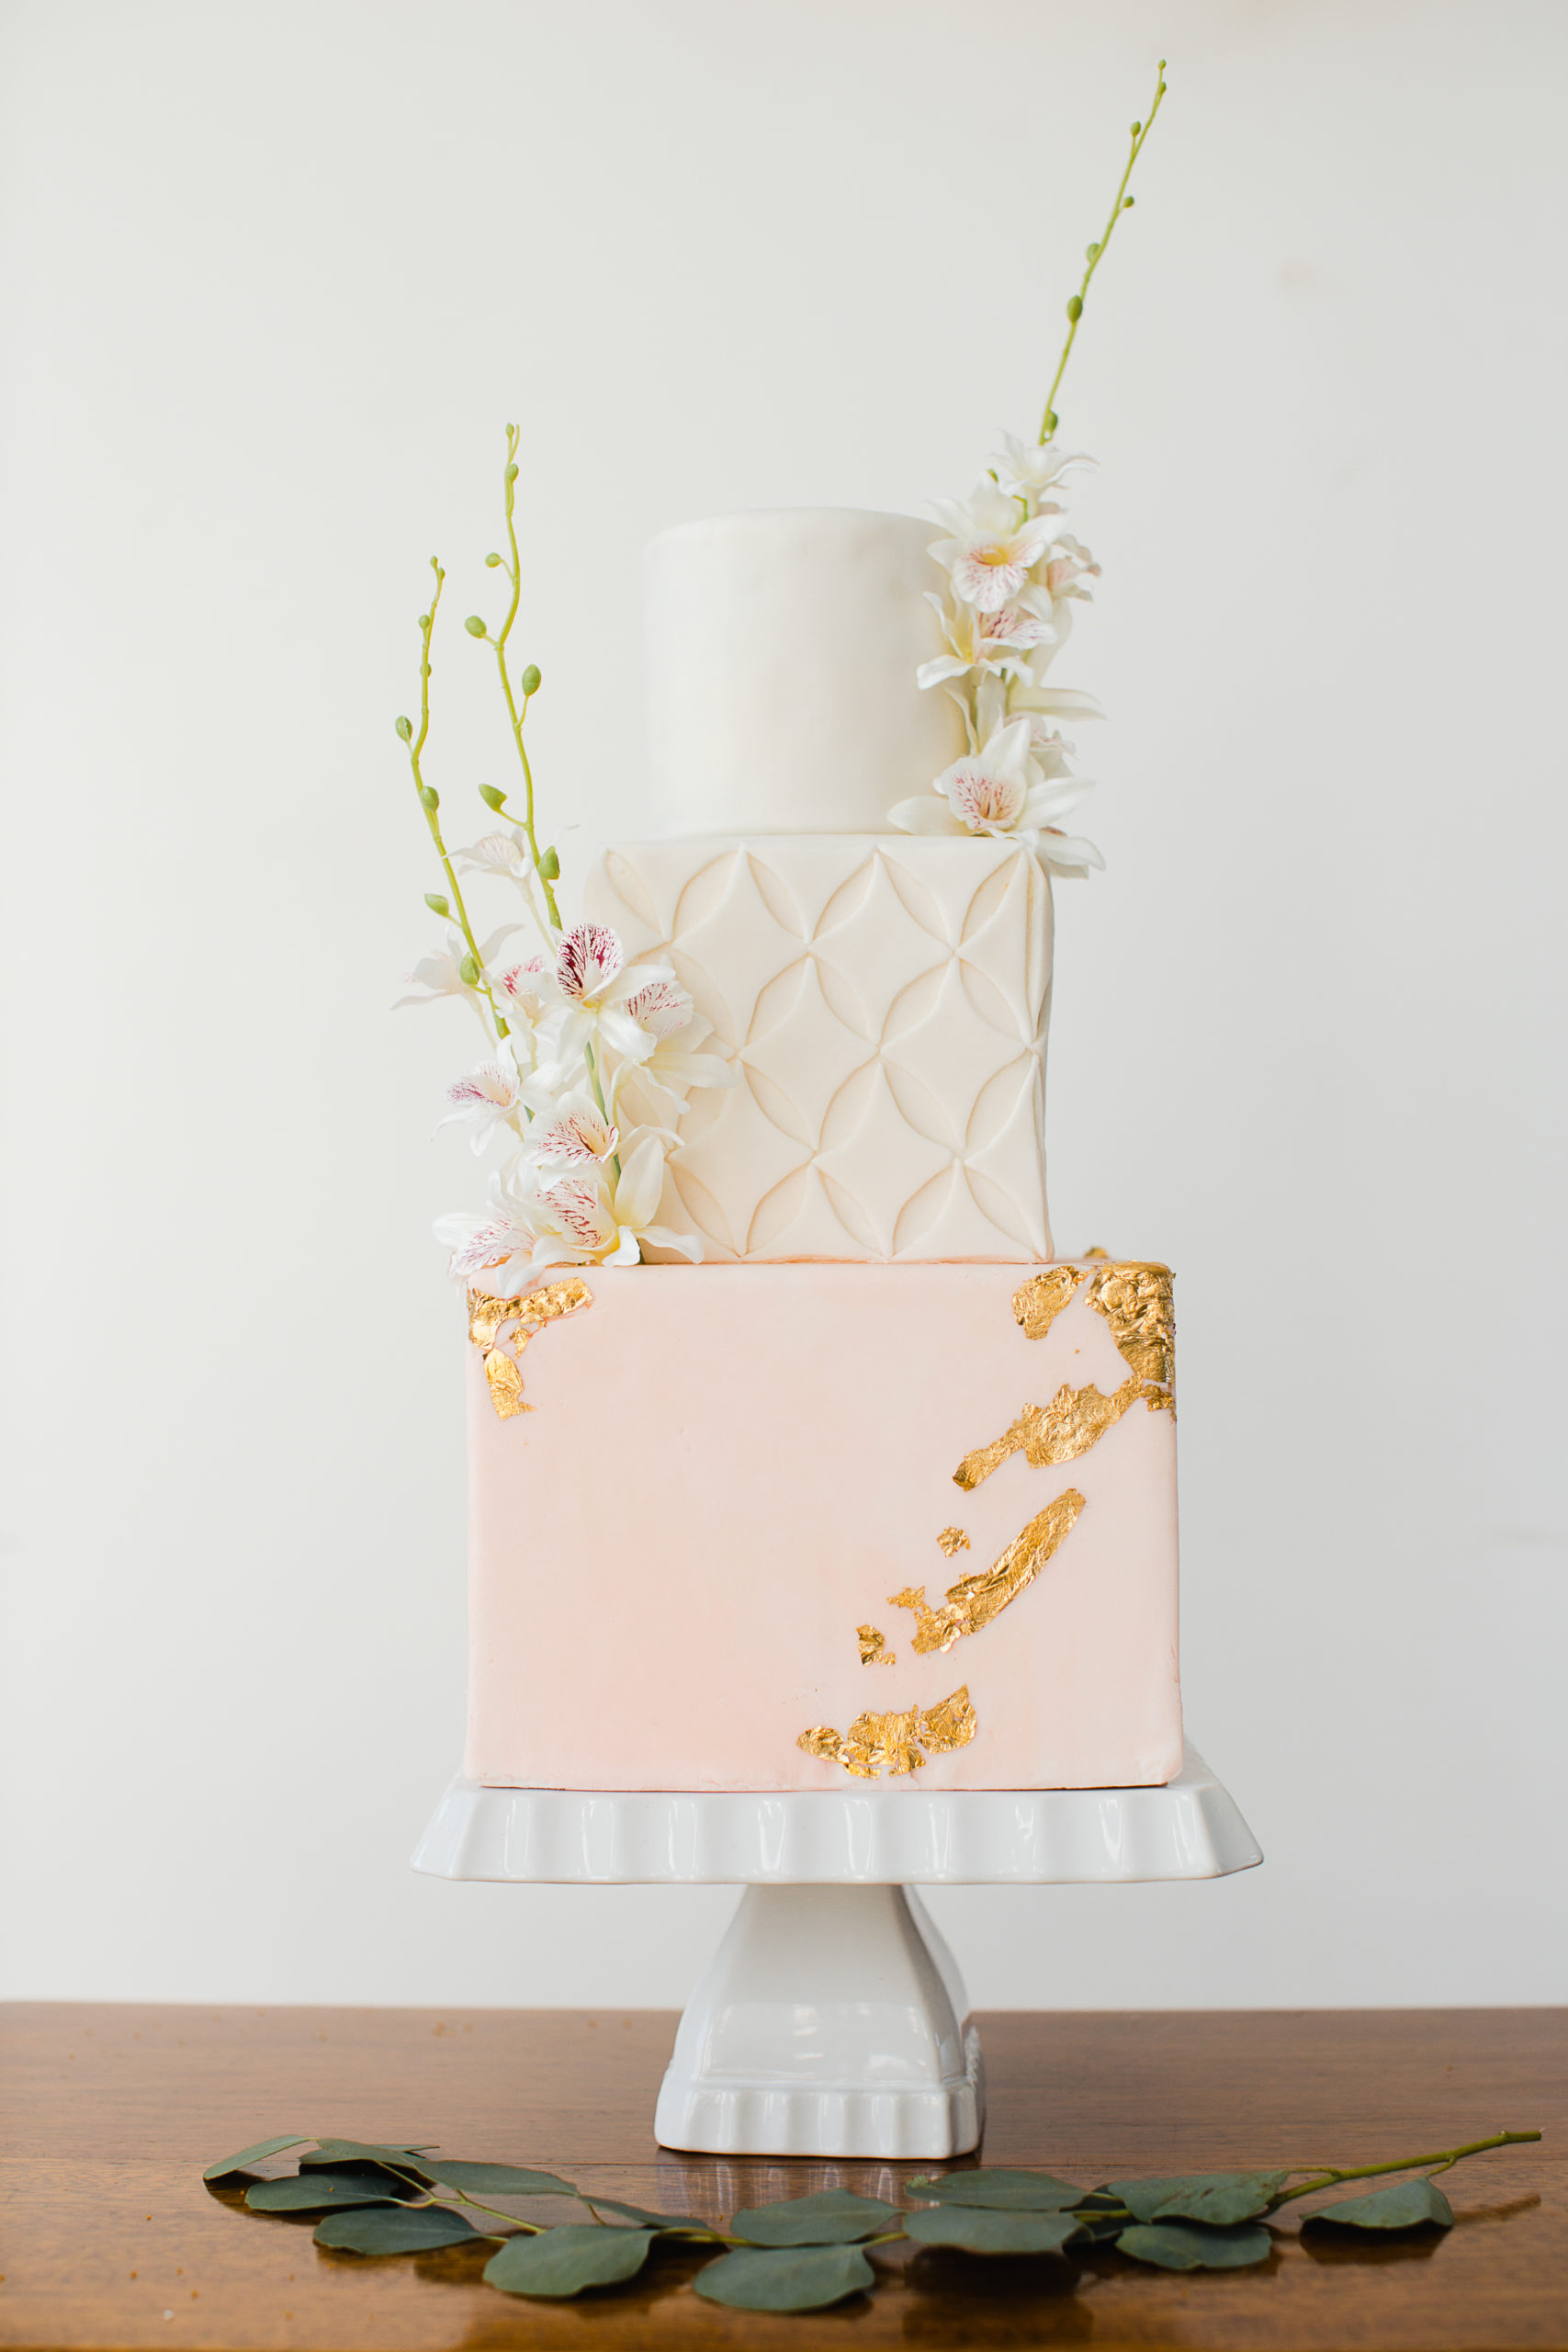 Vancouver Island Wedding Cakes With Style West Coast Weddings